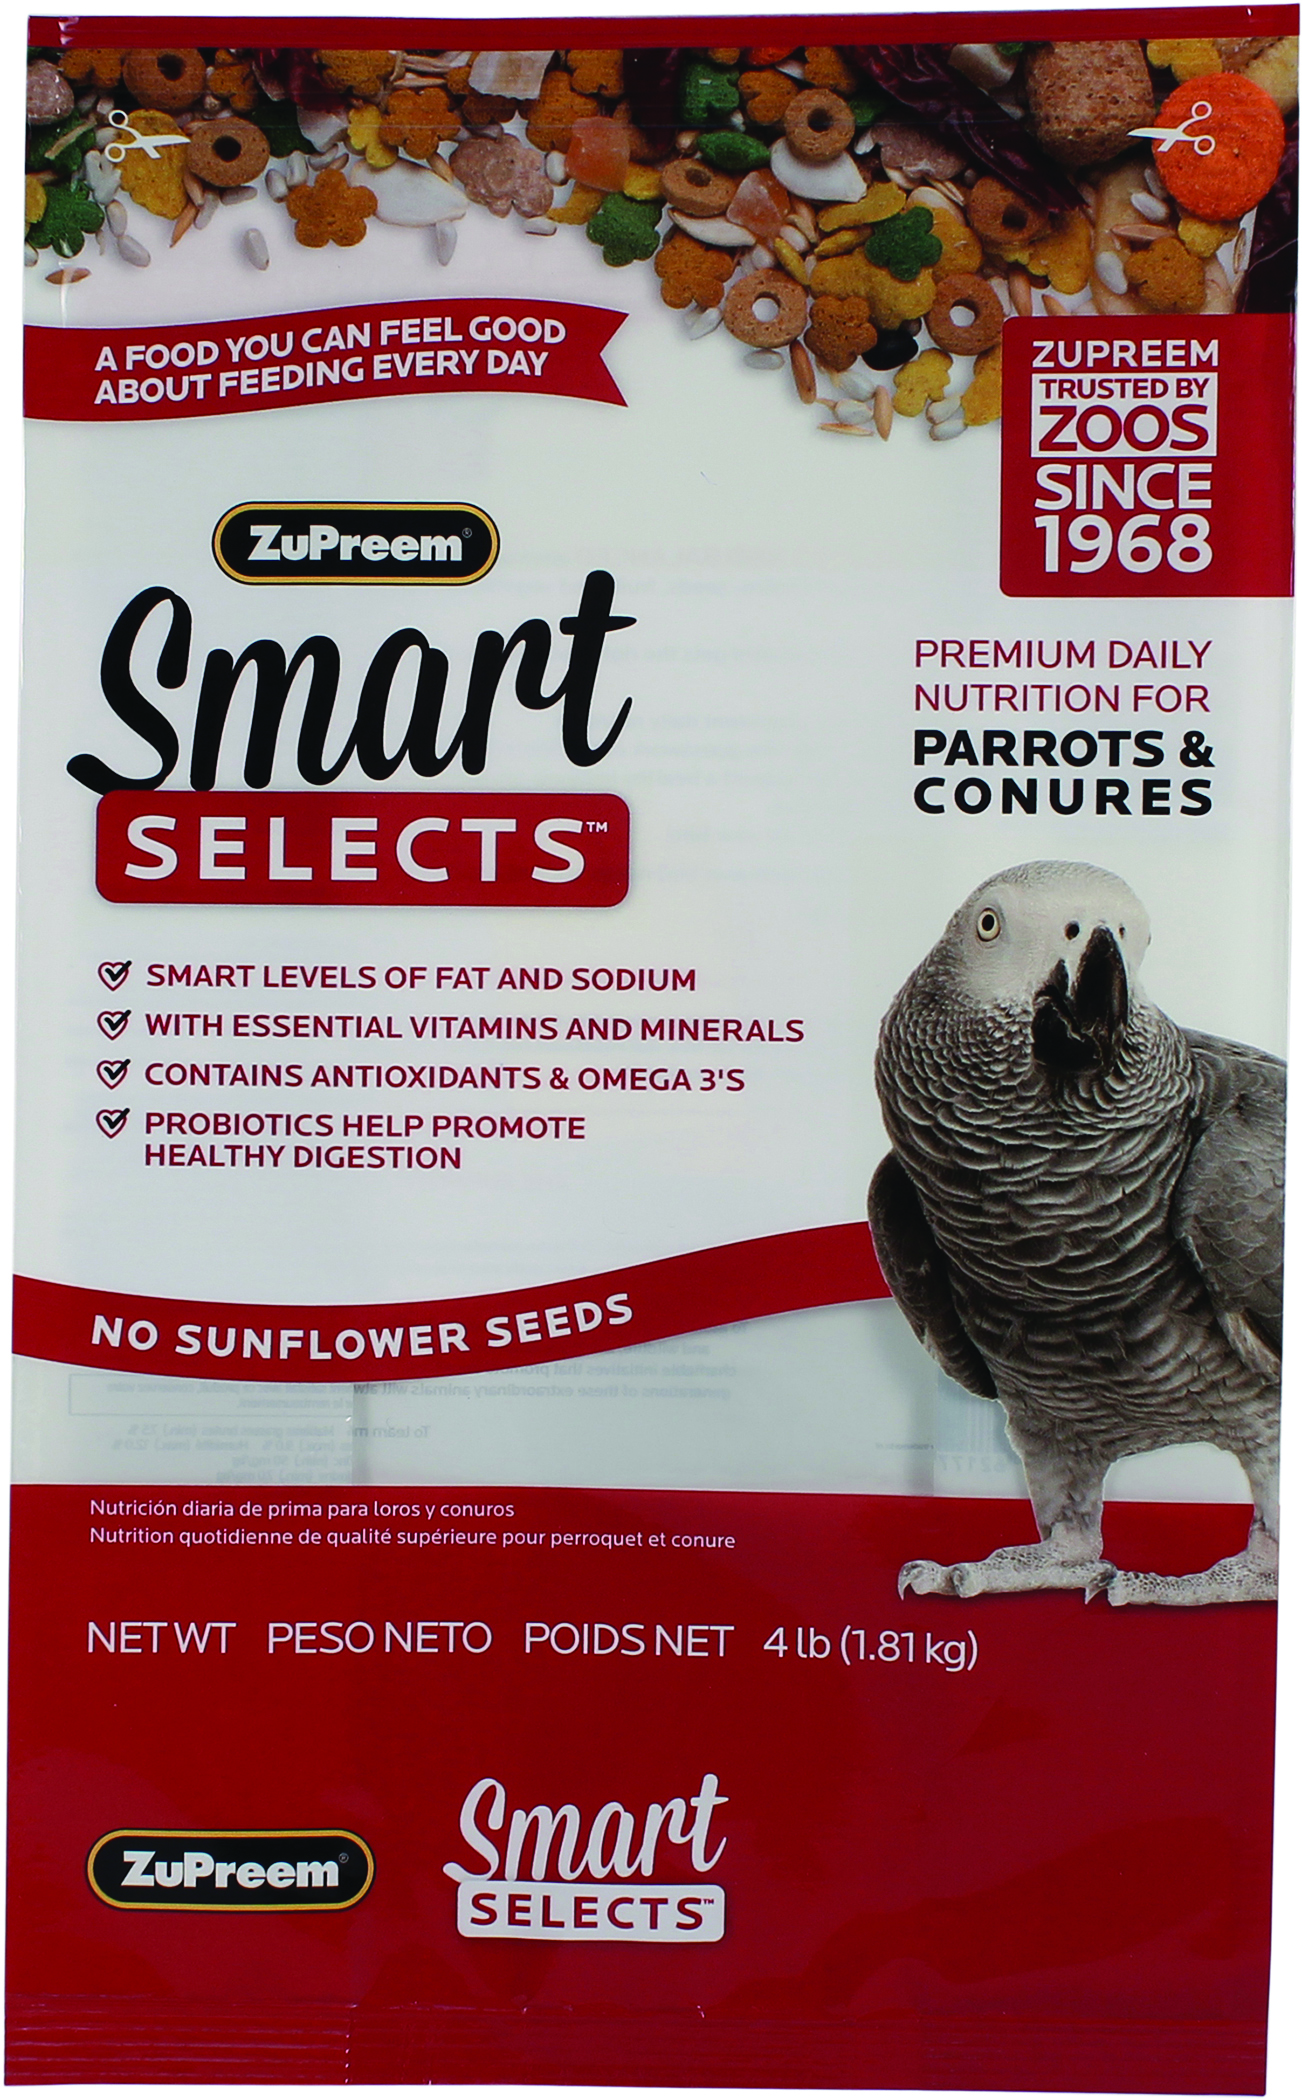 Zupreem Smart Selects Premium Daily Nutrition For Birds - Parrots and Conures